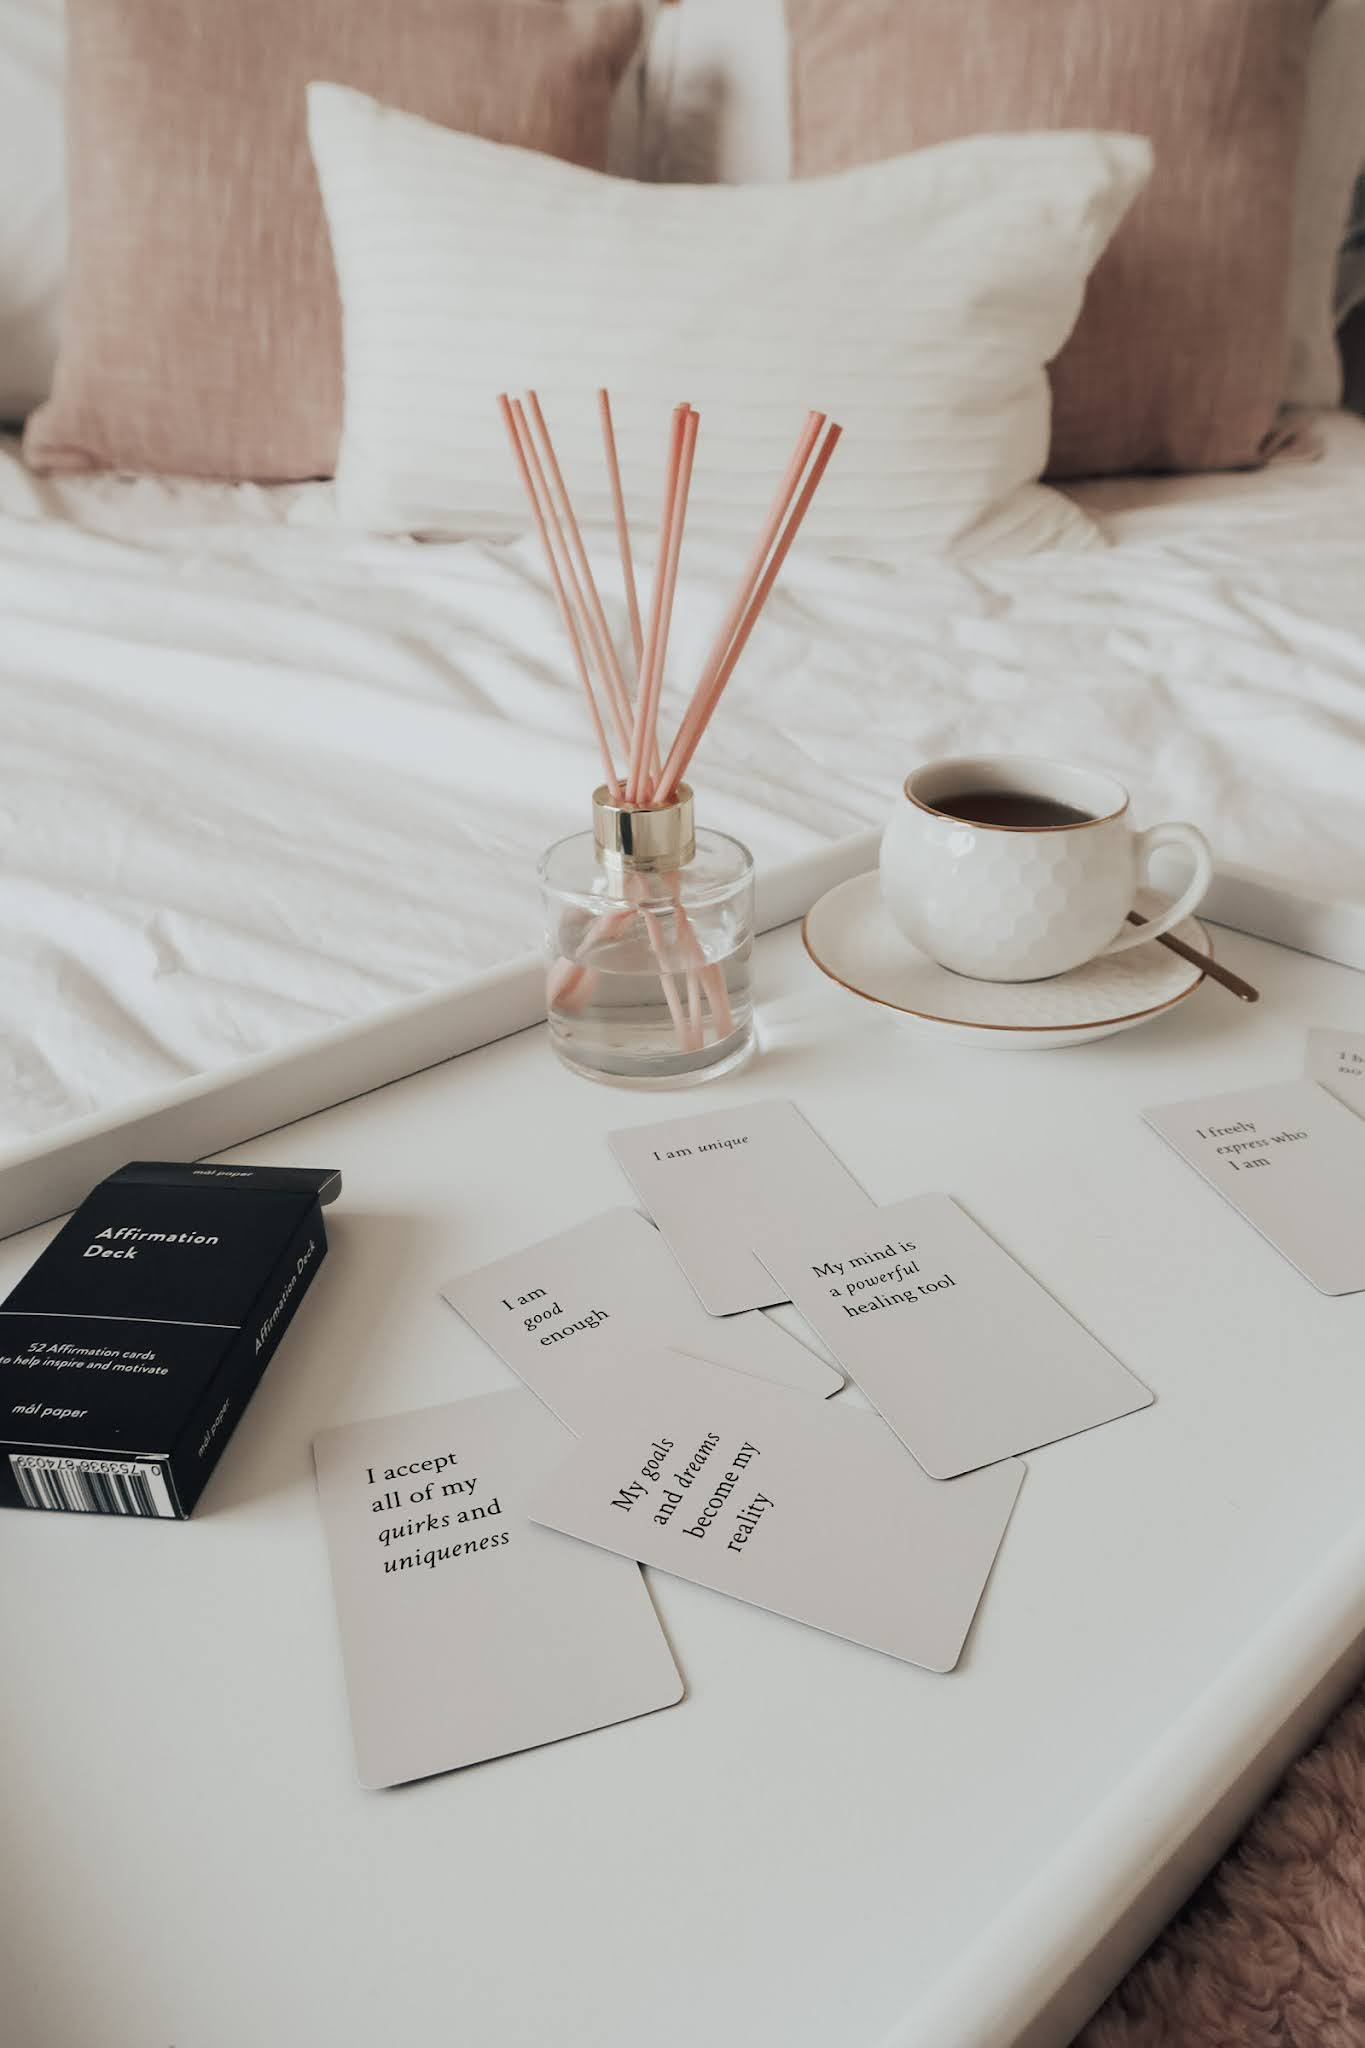 Splayed white affirmation cards on a white tray.